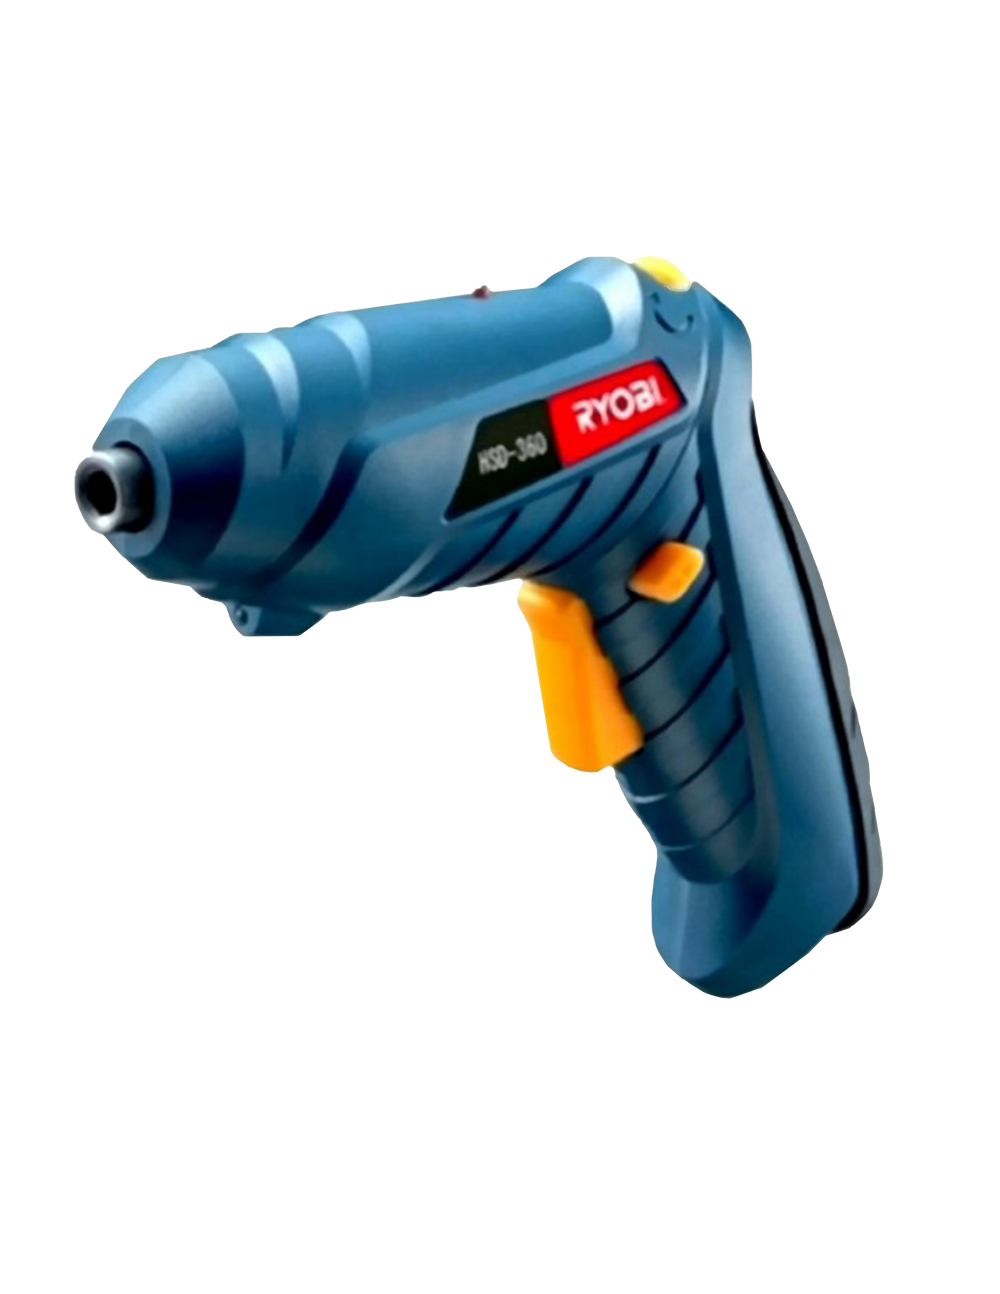 A blue screw driver with yellow buttons that has a Ryobi Logo on it